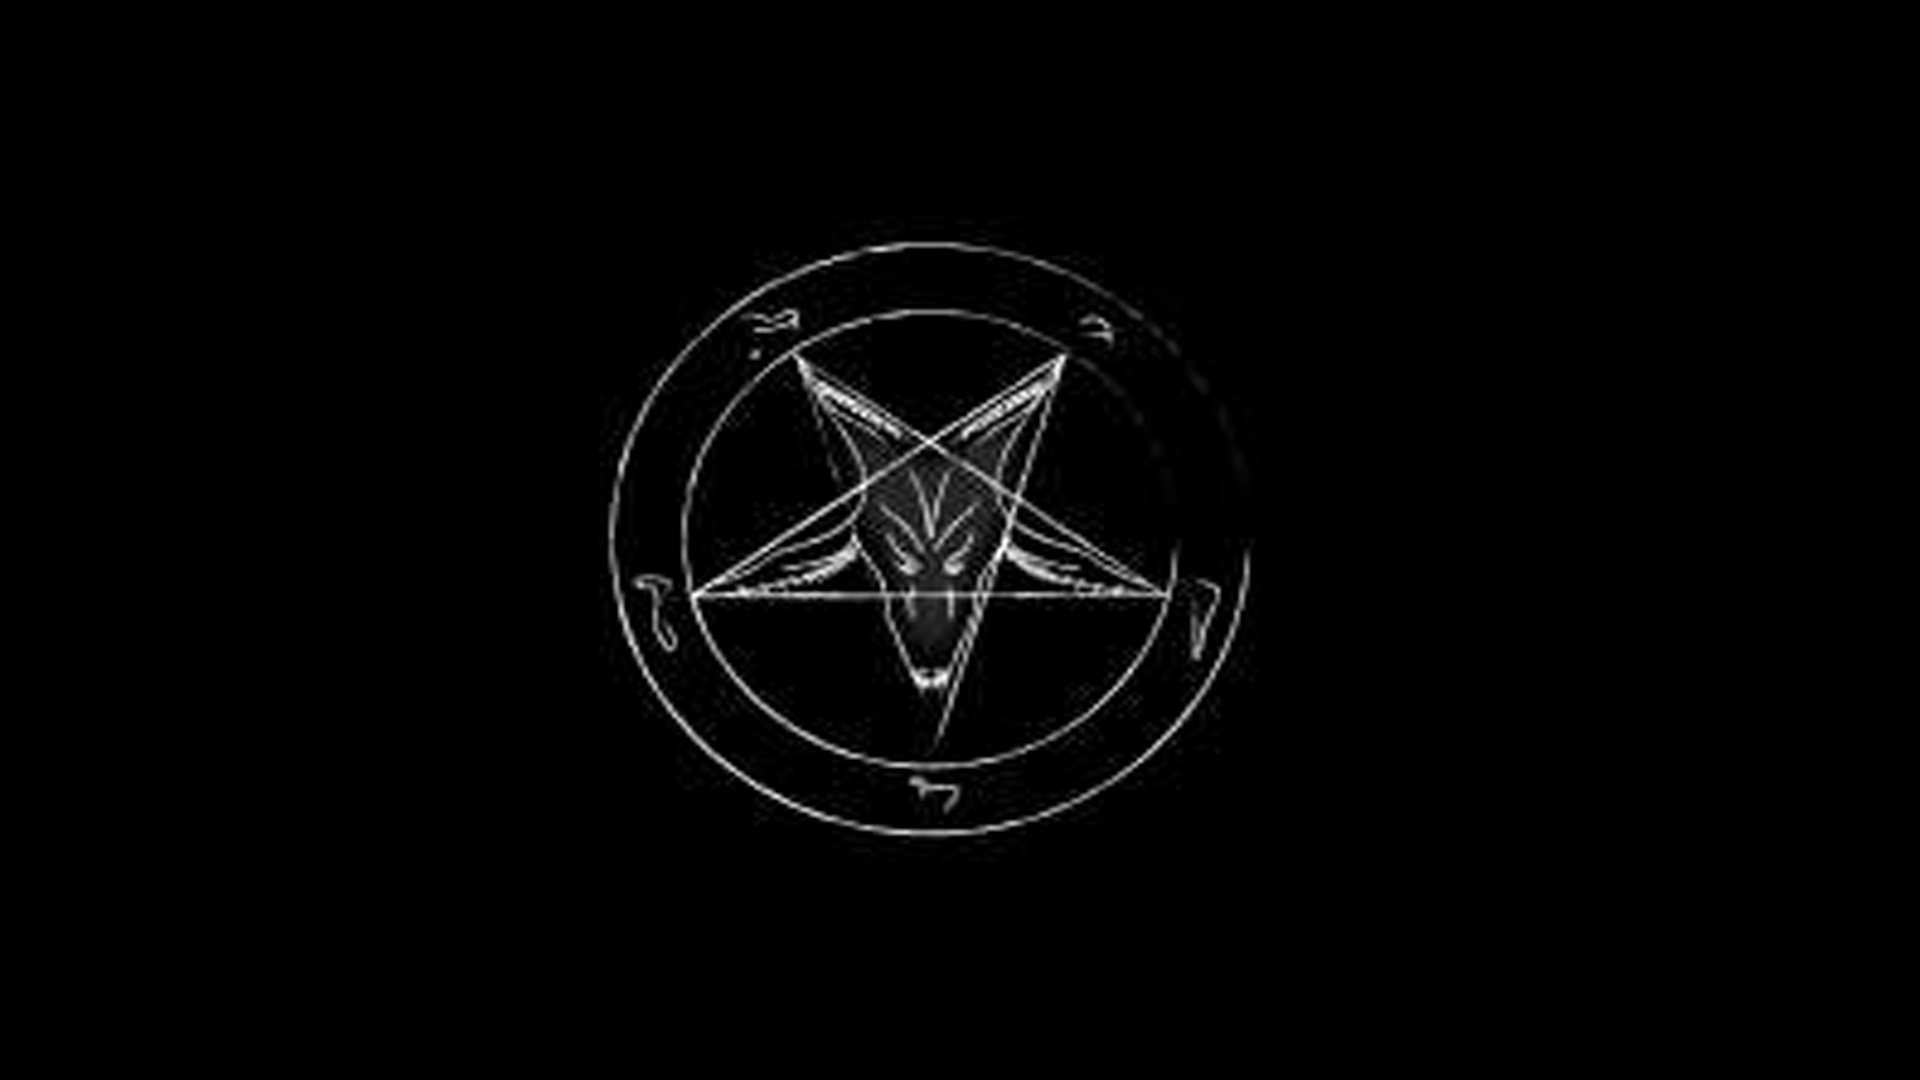 Occult Wallpaper Dark   occult wallpapers and 1920x1080